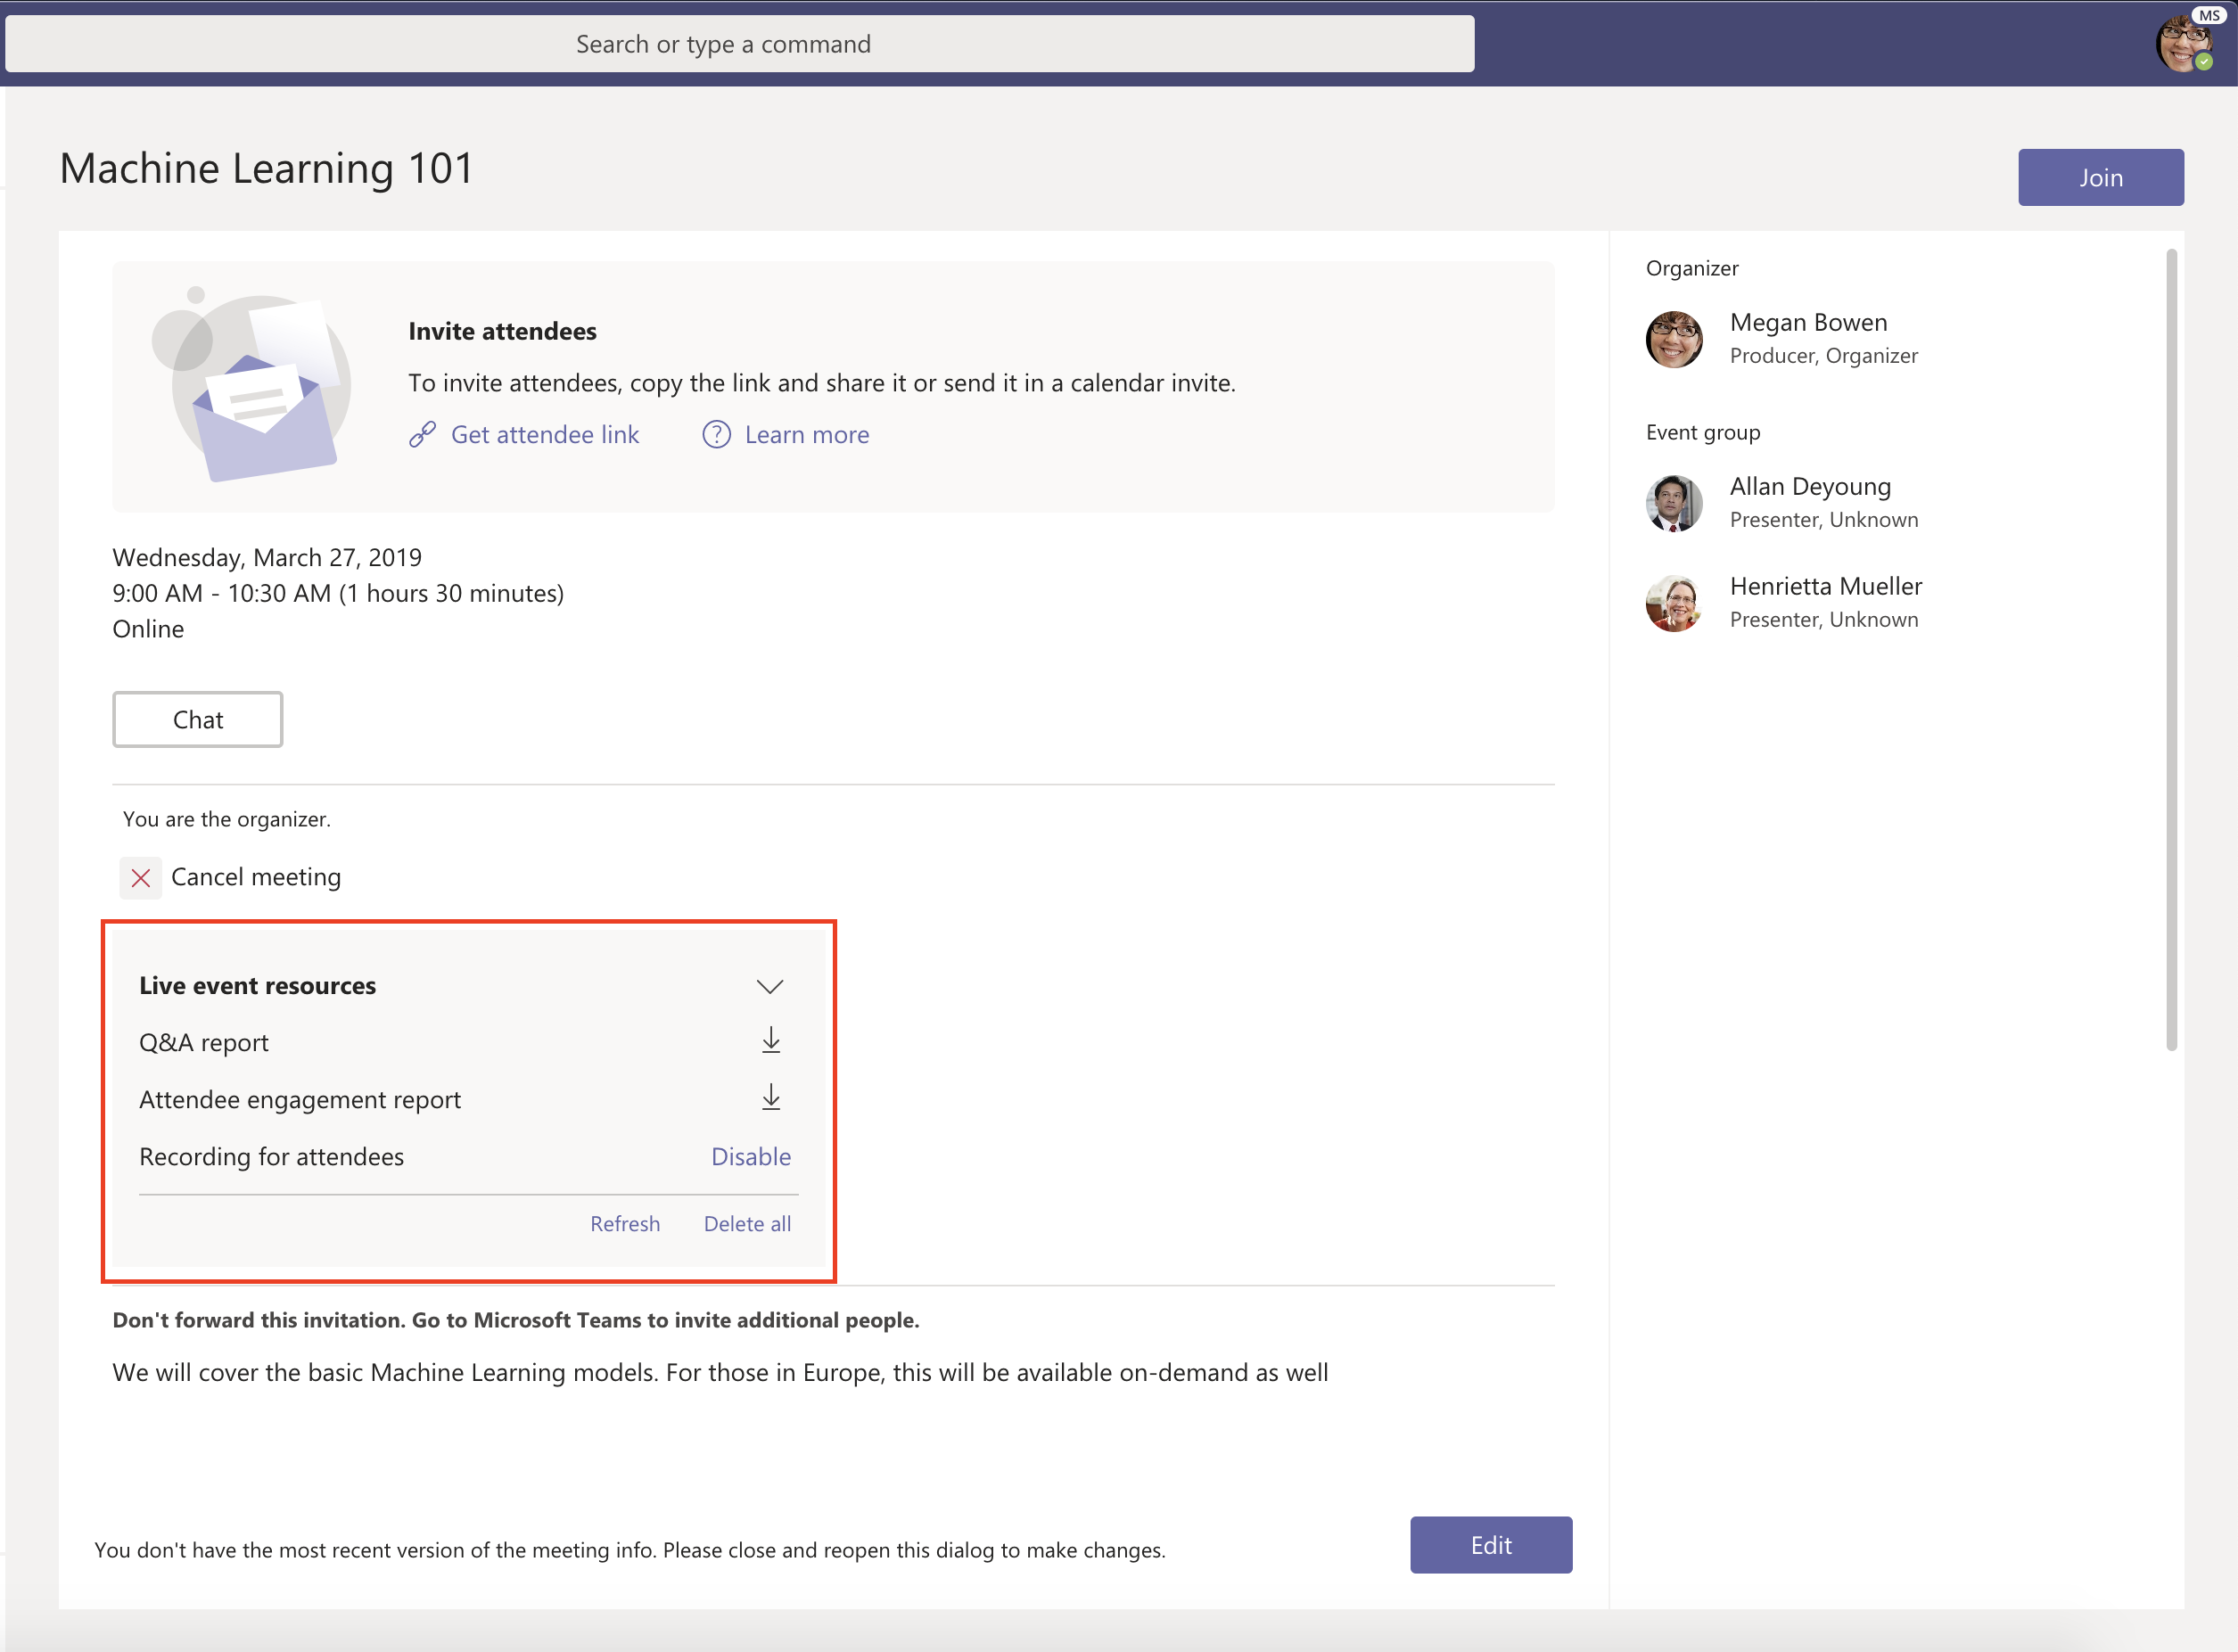 Live events now generally available in Microsoft Teams